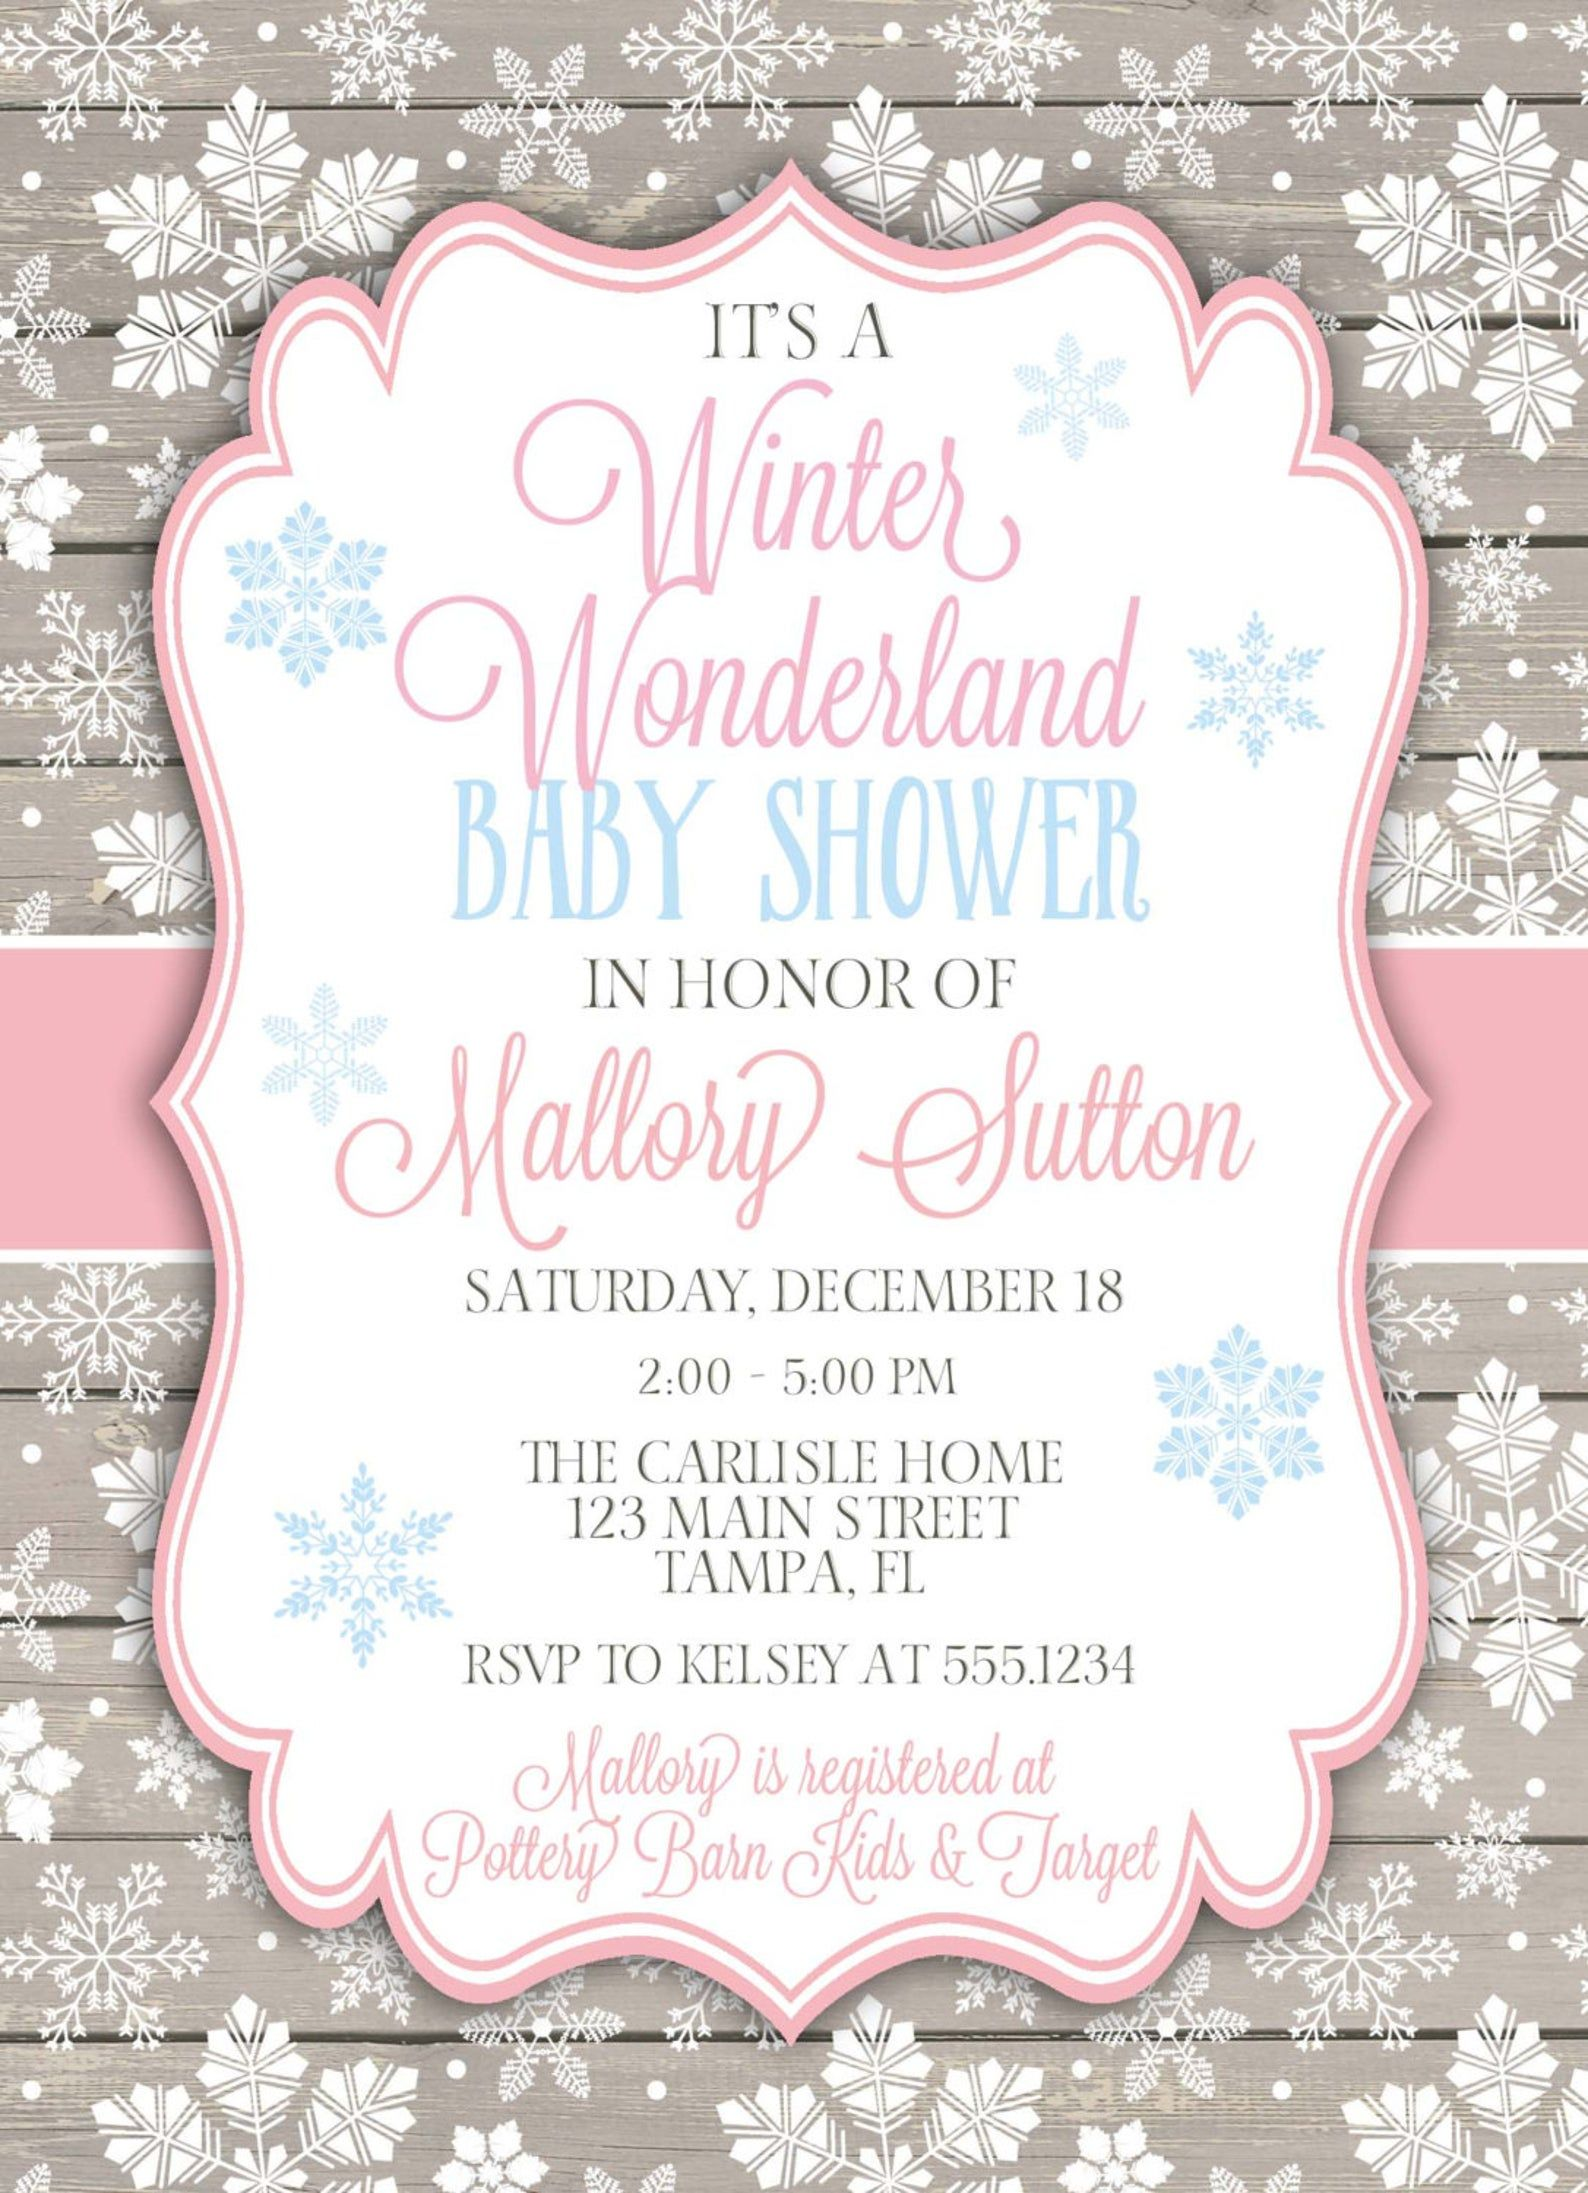 Winter Wonderland Baby Shower Invitation, Winter Baby Shower, Snowflake Baby Shower Invitation, Snowflake Invitation, DIY Printable #winterwonderlandbabyshowerideas